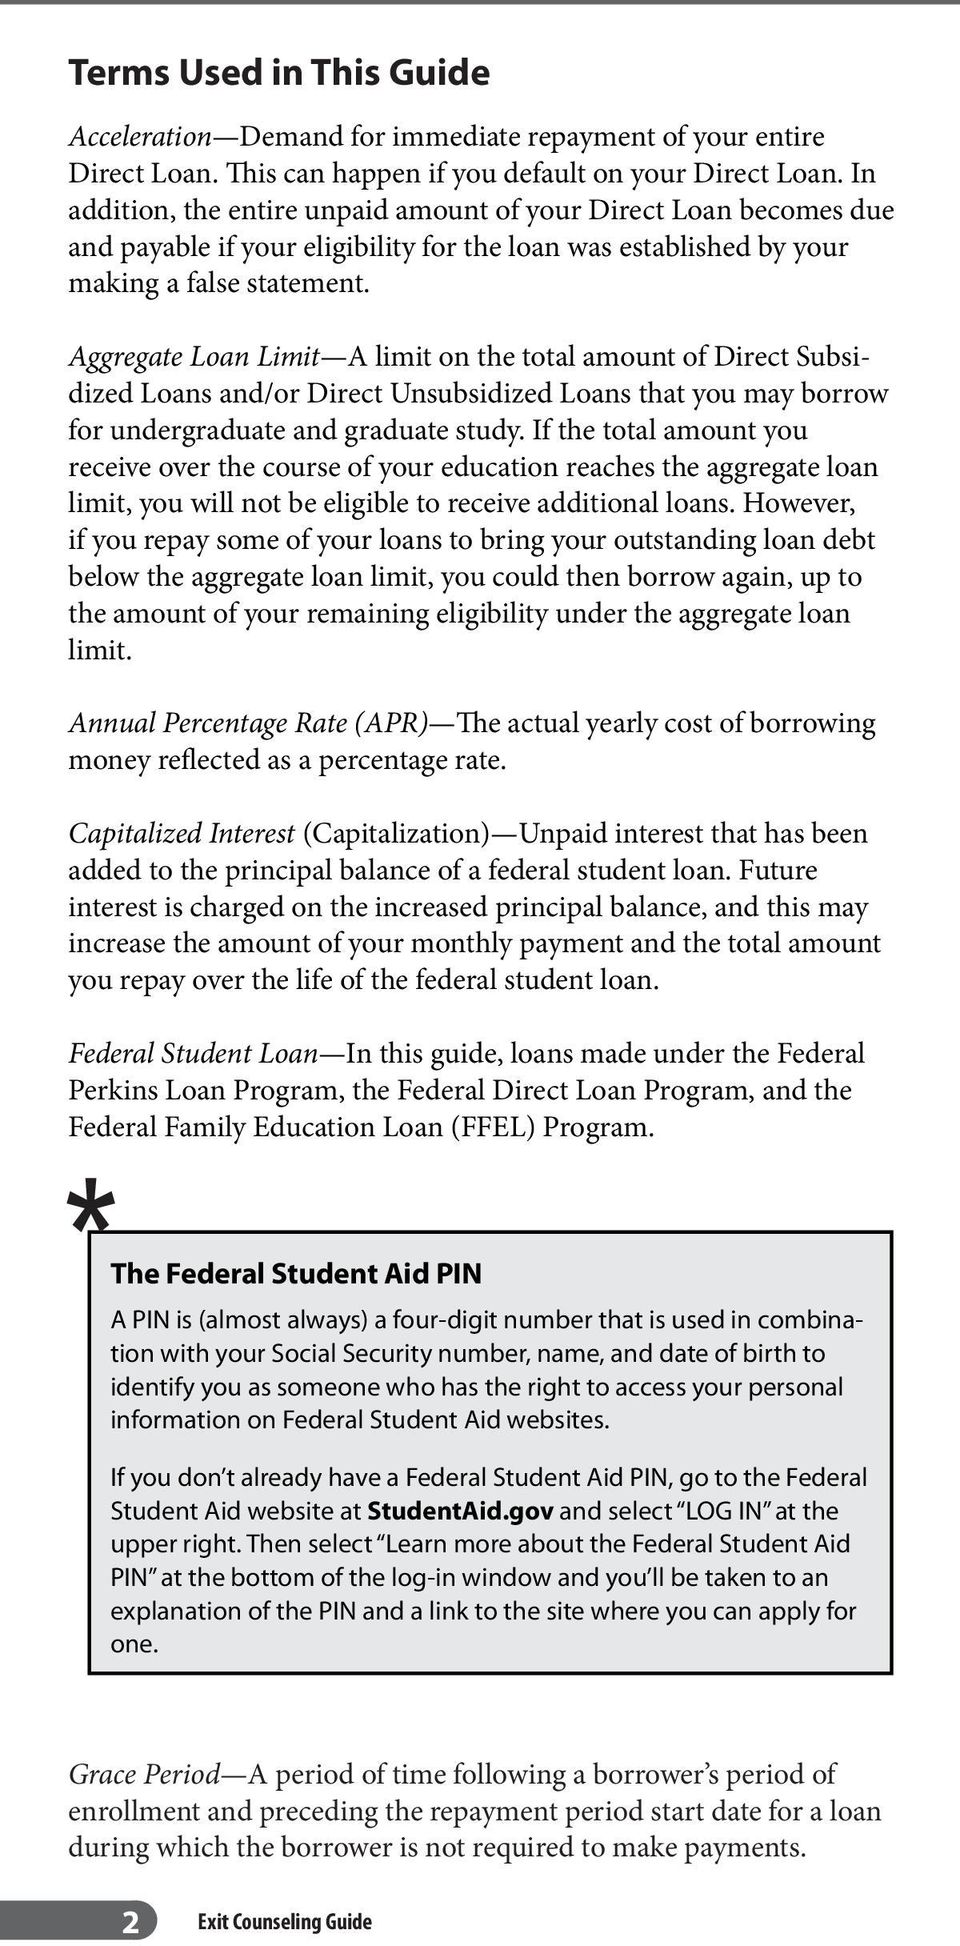 Aggregate Loan Limit A limit on the total amount of Direct Subsidized Loans and/or Direct Unsubsidized Loans that you may borrow for undergraduate and graduate study.